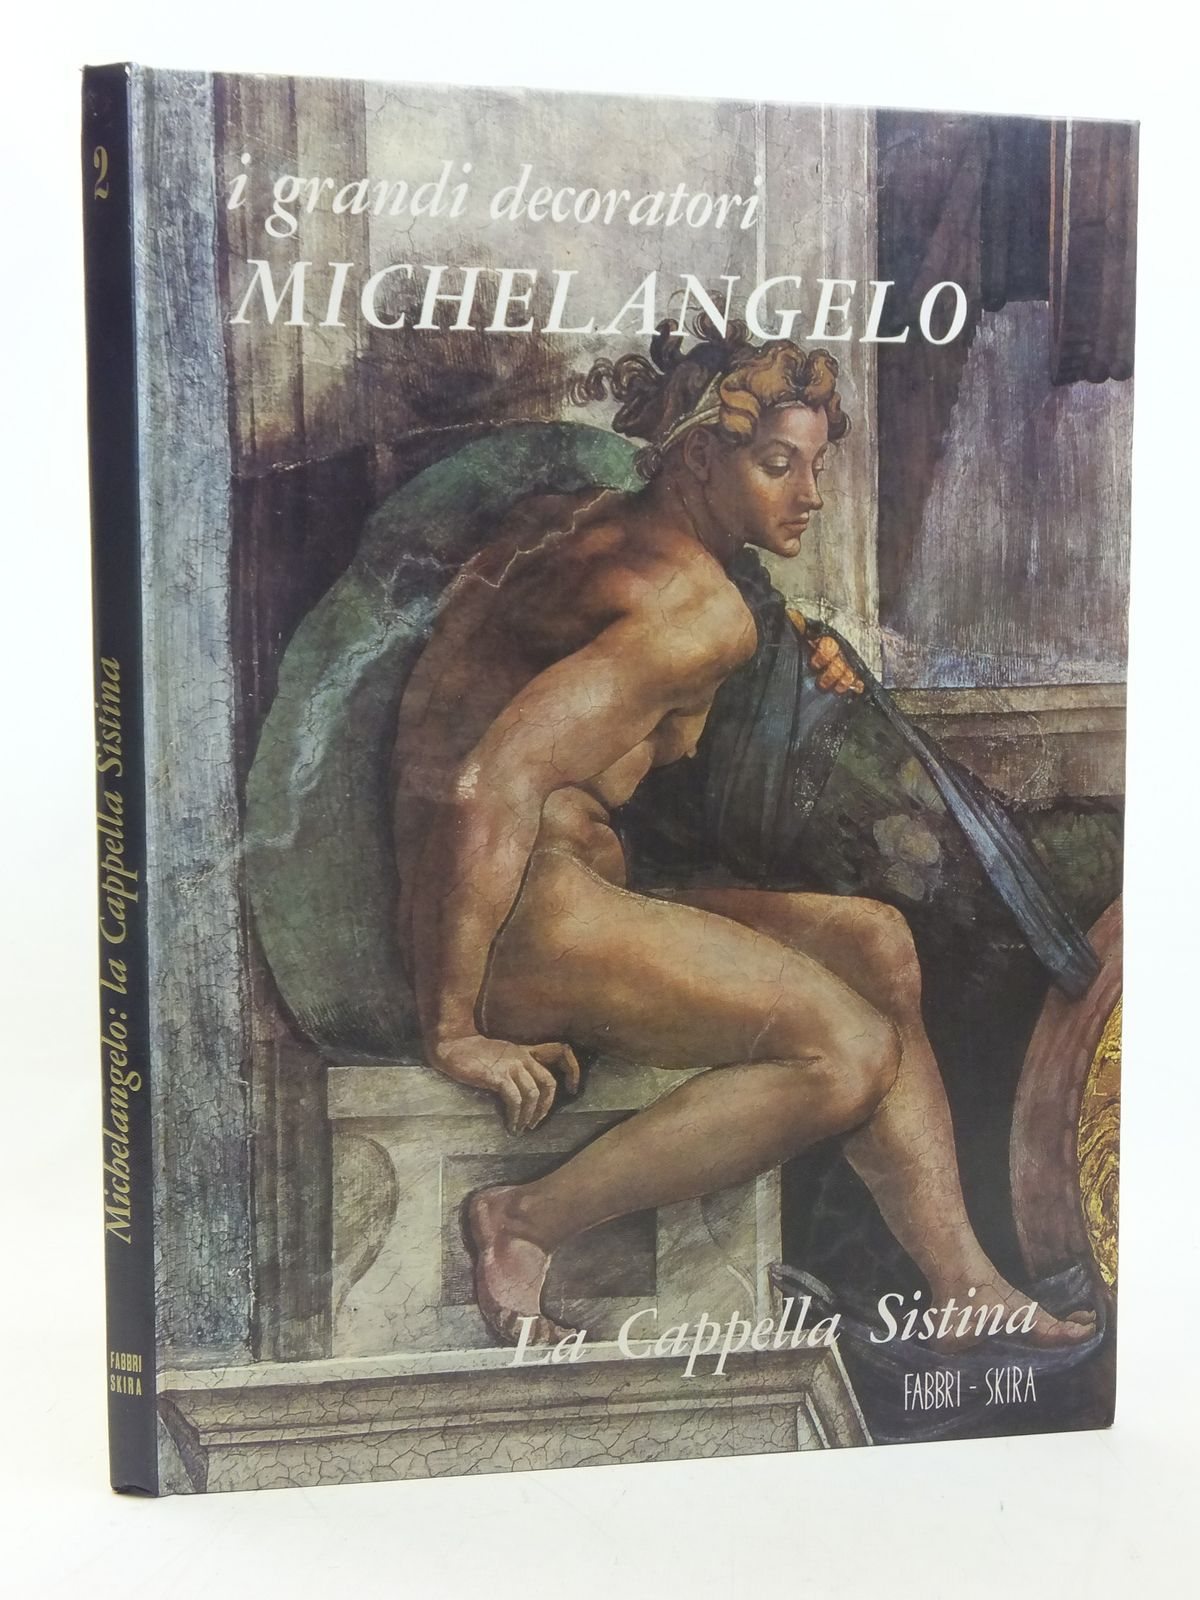 Photo of MICHELANGELO LA CAPPELLA SISTINA written by Bottari, Stefano published by Fratelli Fabbri Editori (STOCK CODE: 1607201)  for sale by Stella & Rose's Books